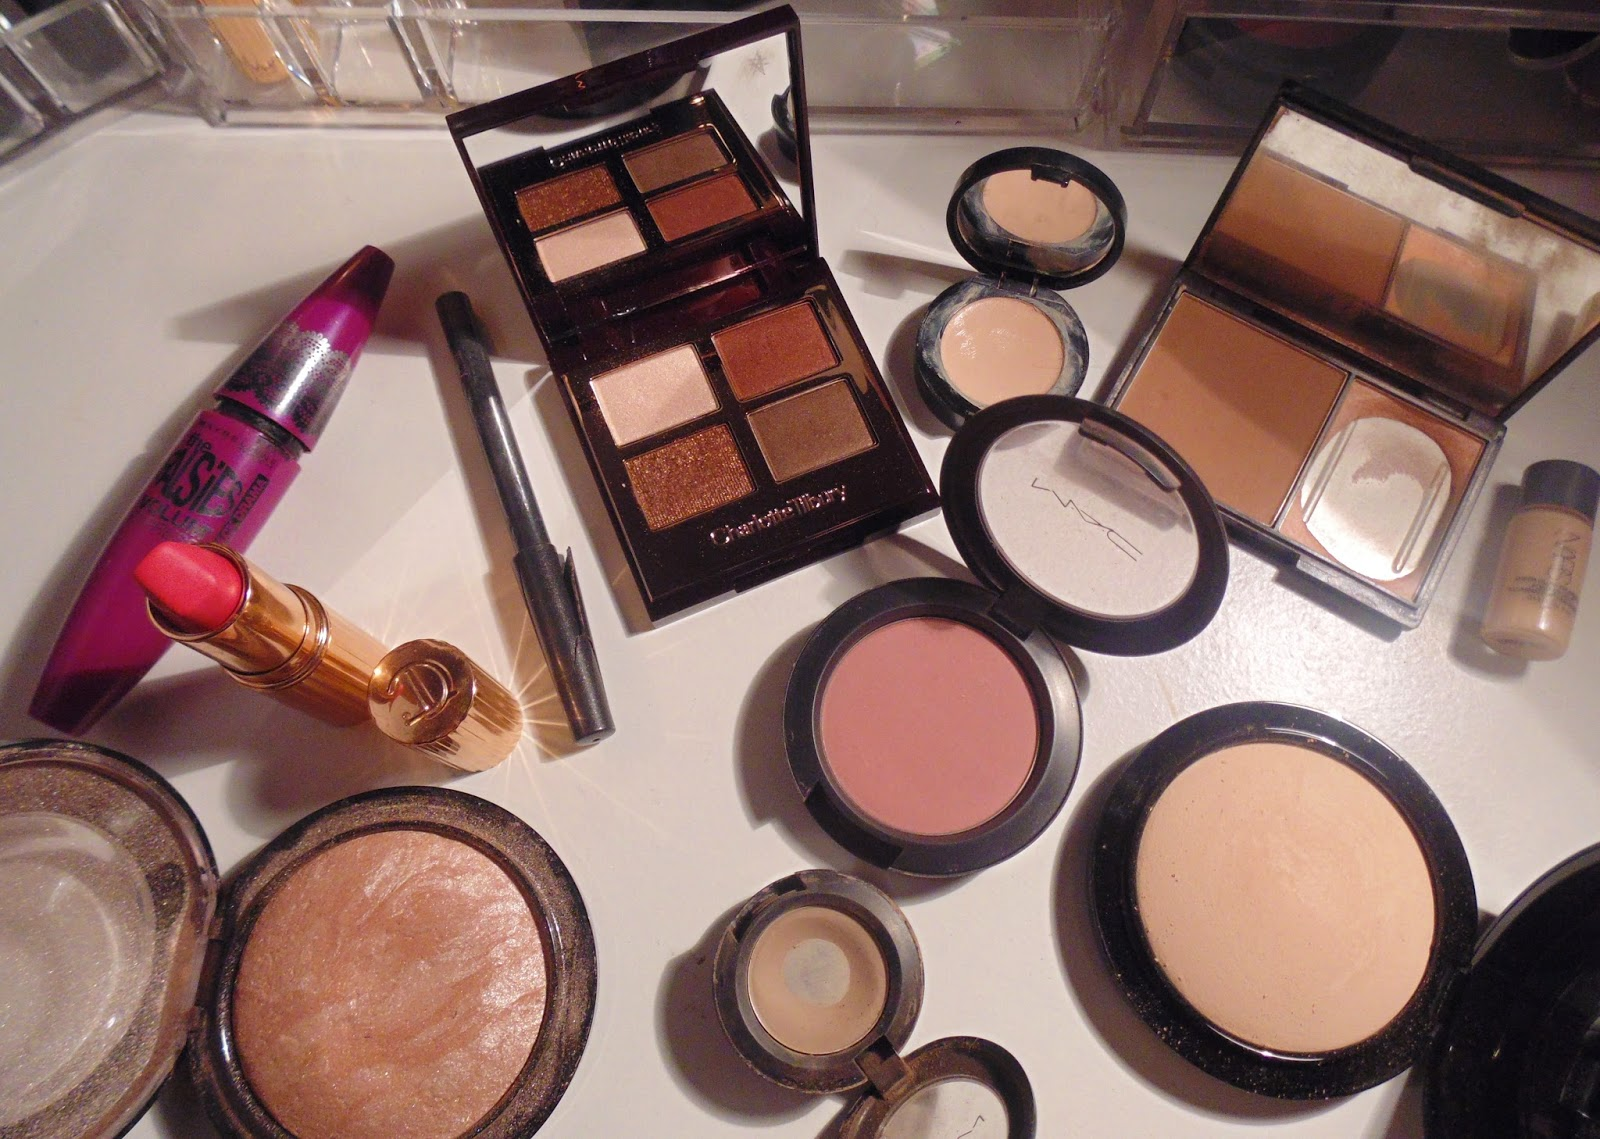 What's on my face make up look Charlotte Tilbury mac